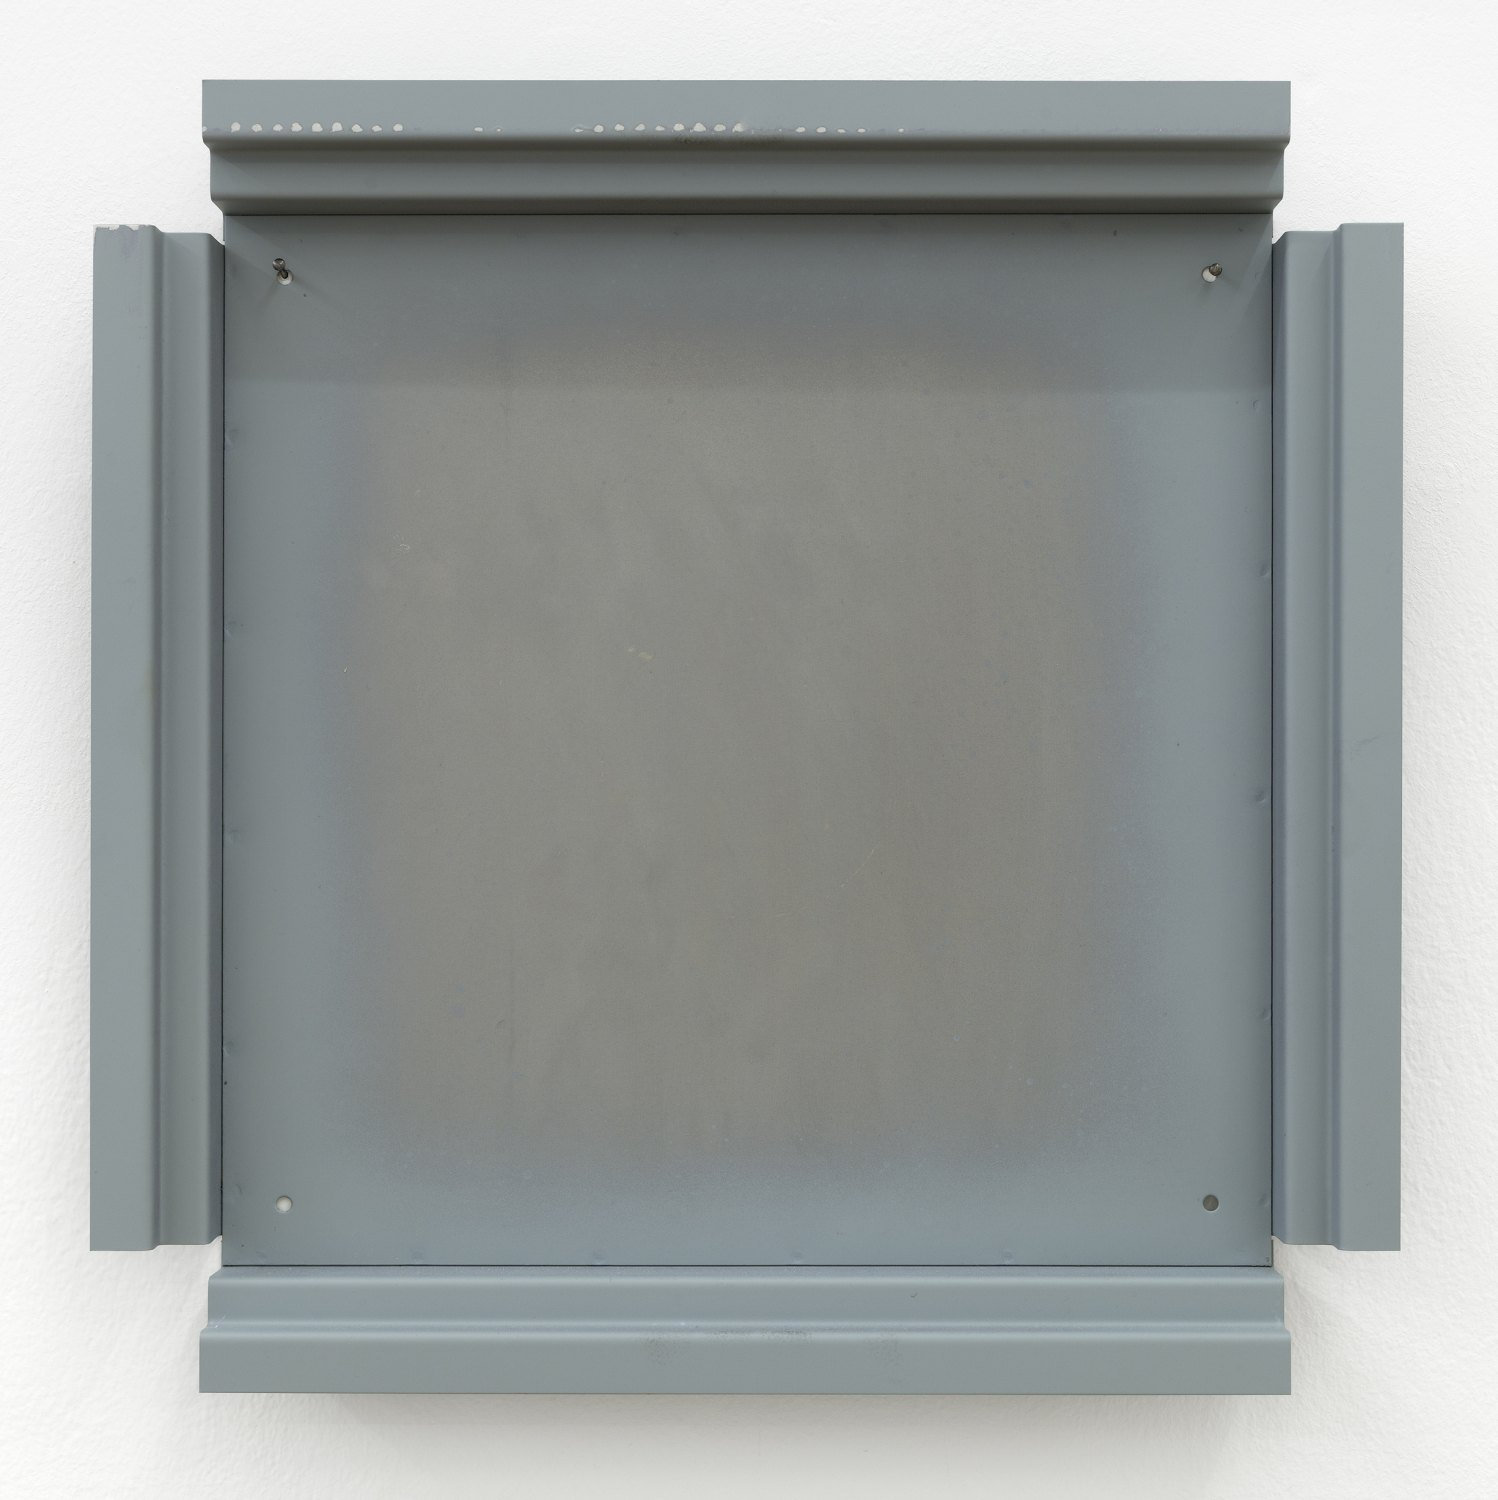 Manfred Pernice   Cassette 36, 2014    Metal, paint, 42.2 × 42.2 × 4.4 cm